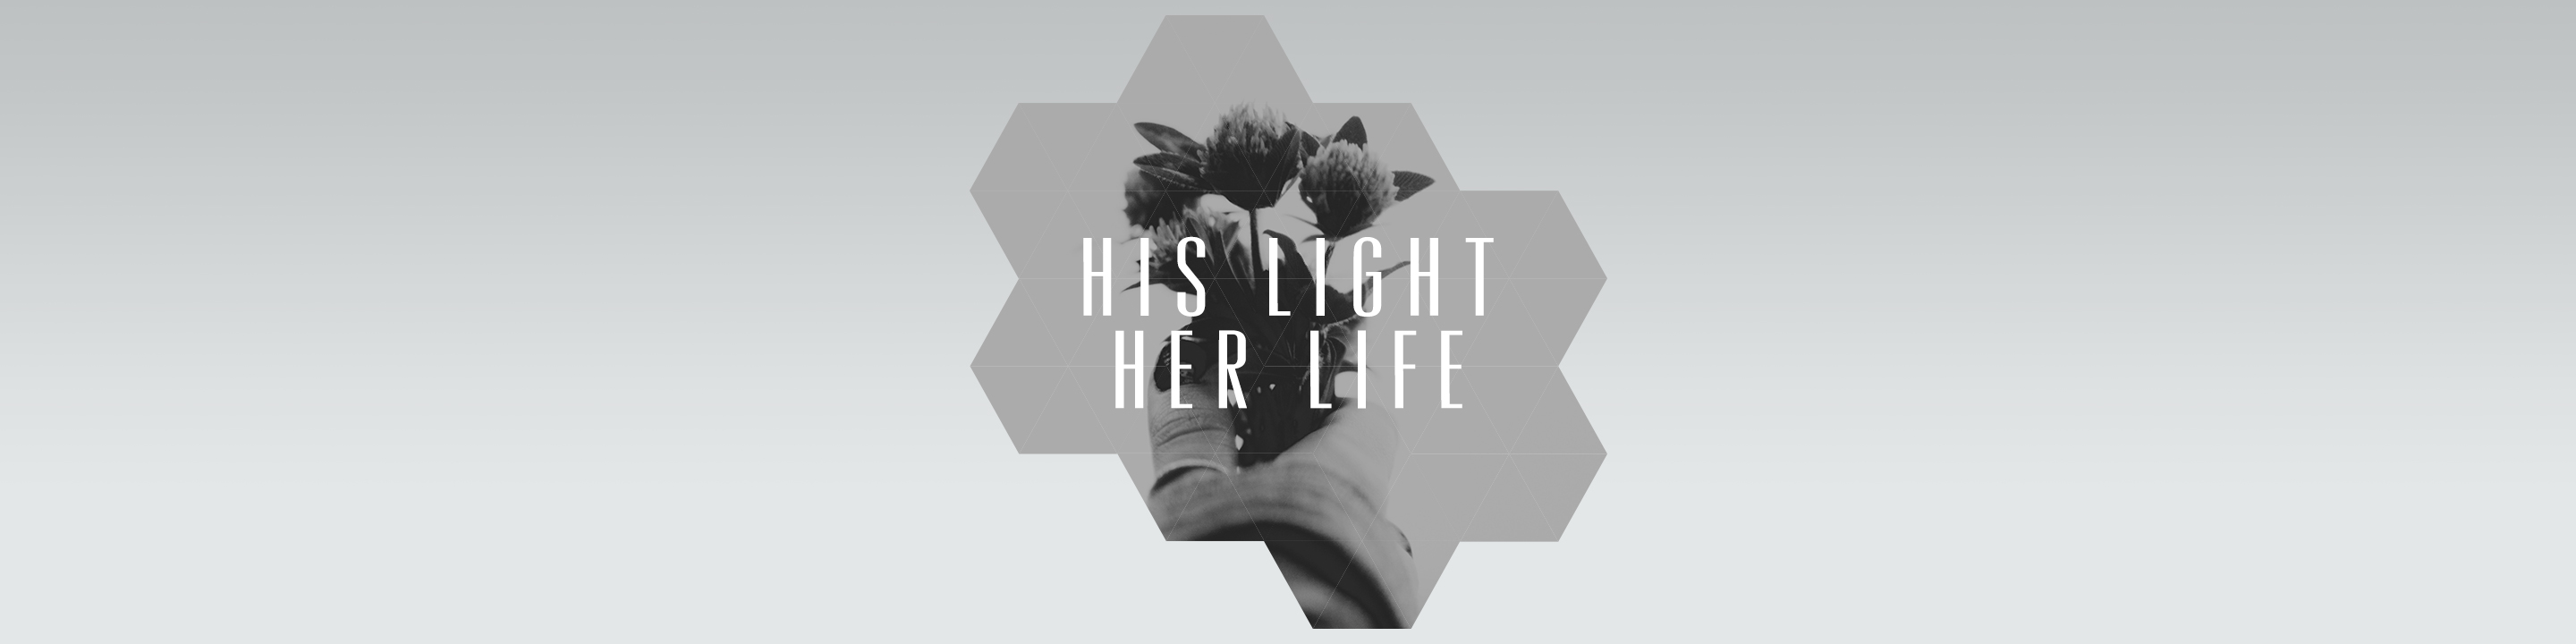 His-Light-Her-Life-Banner